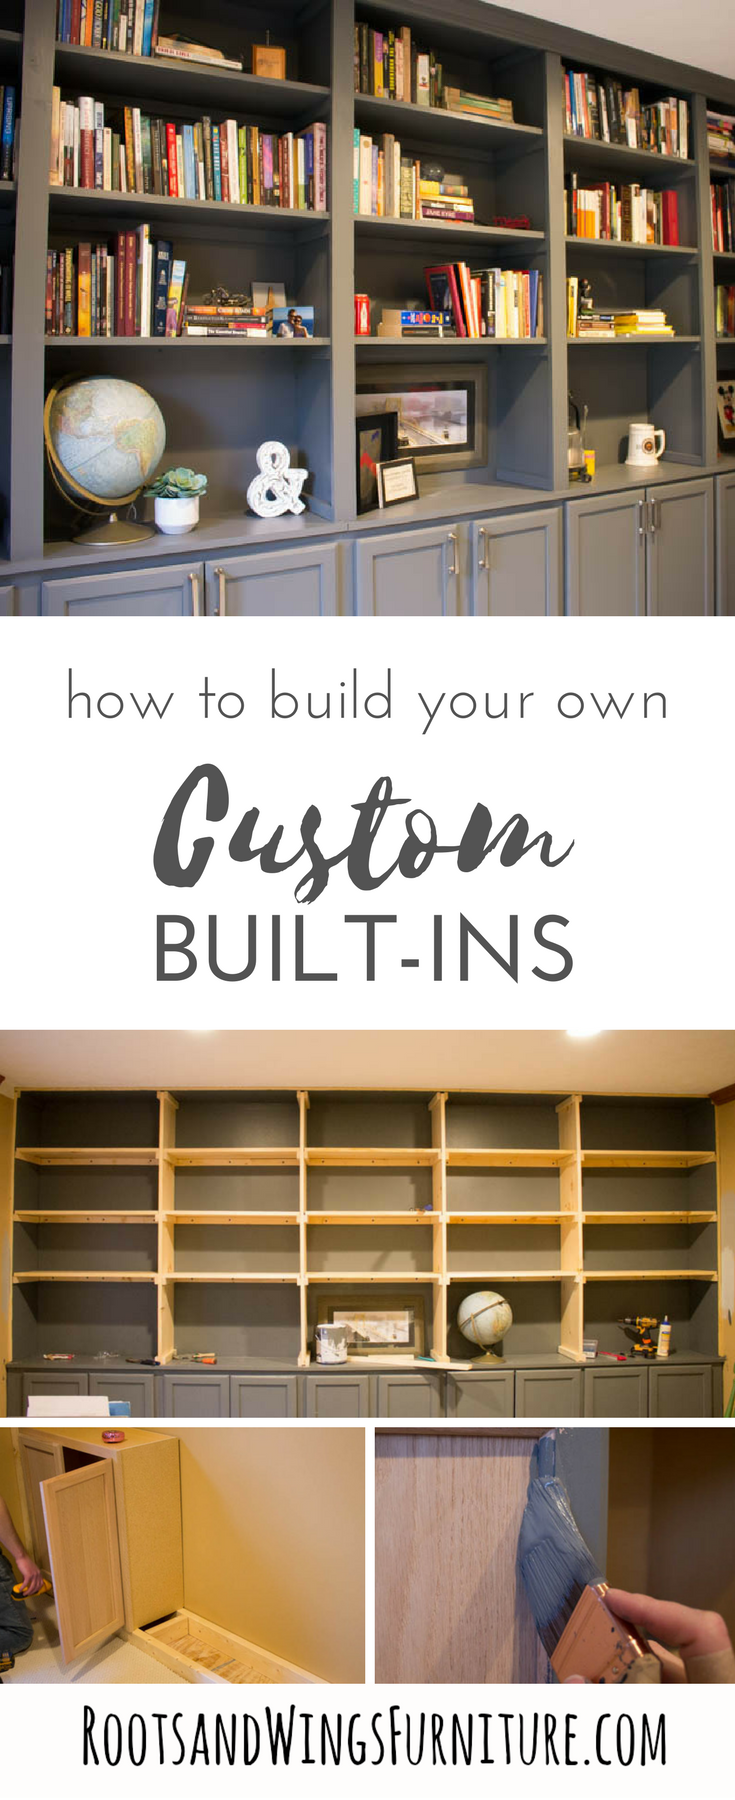 Diy Wall To Wall Book Cases Use Kitchen Cabinets As A Base And Build A Whole Wall Of Built Ins For You Bookshelves Built In Office Built Ins Built In Bookcase